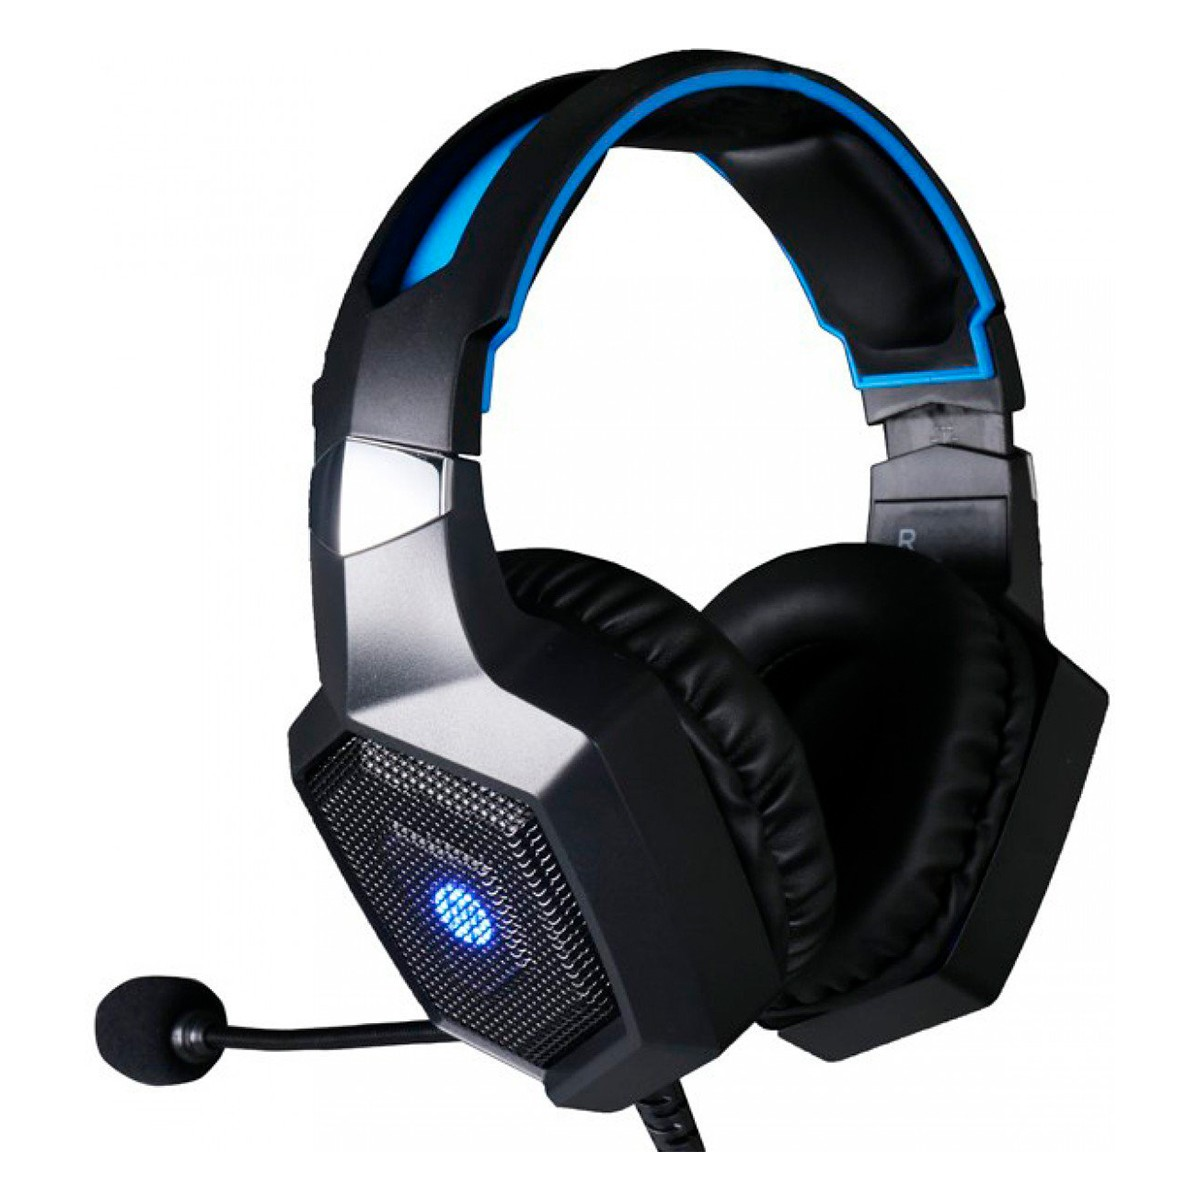 Headset Gamer HP H320GS Surround 7.1 USB 2.0 Driver 50mm LED